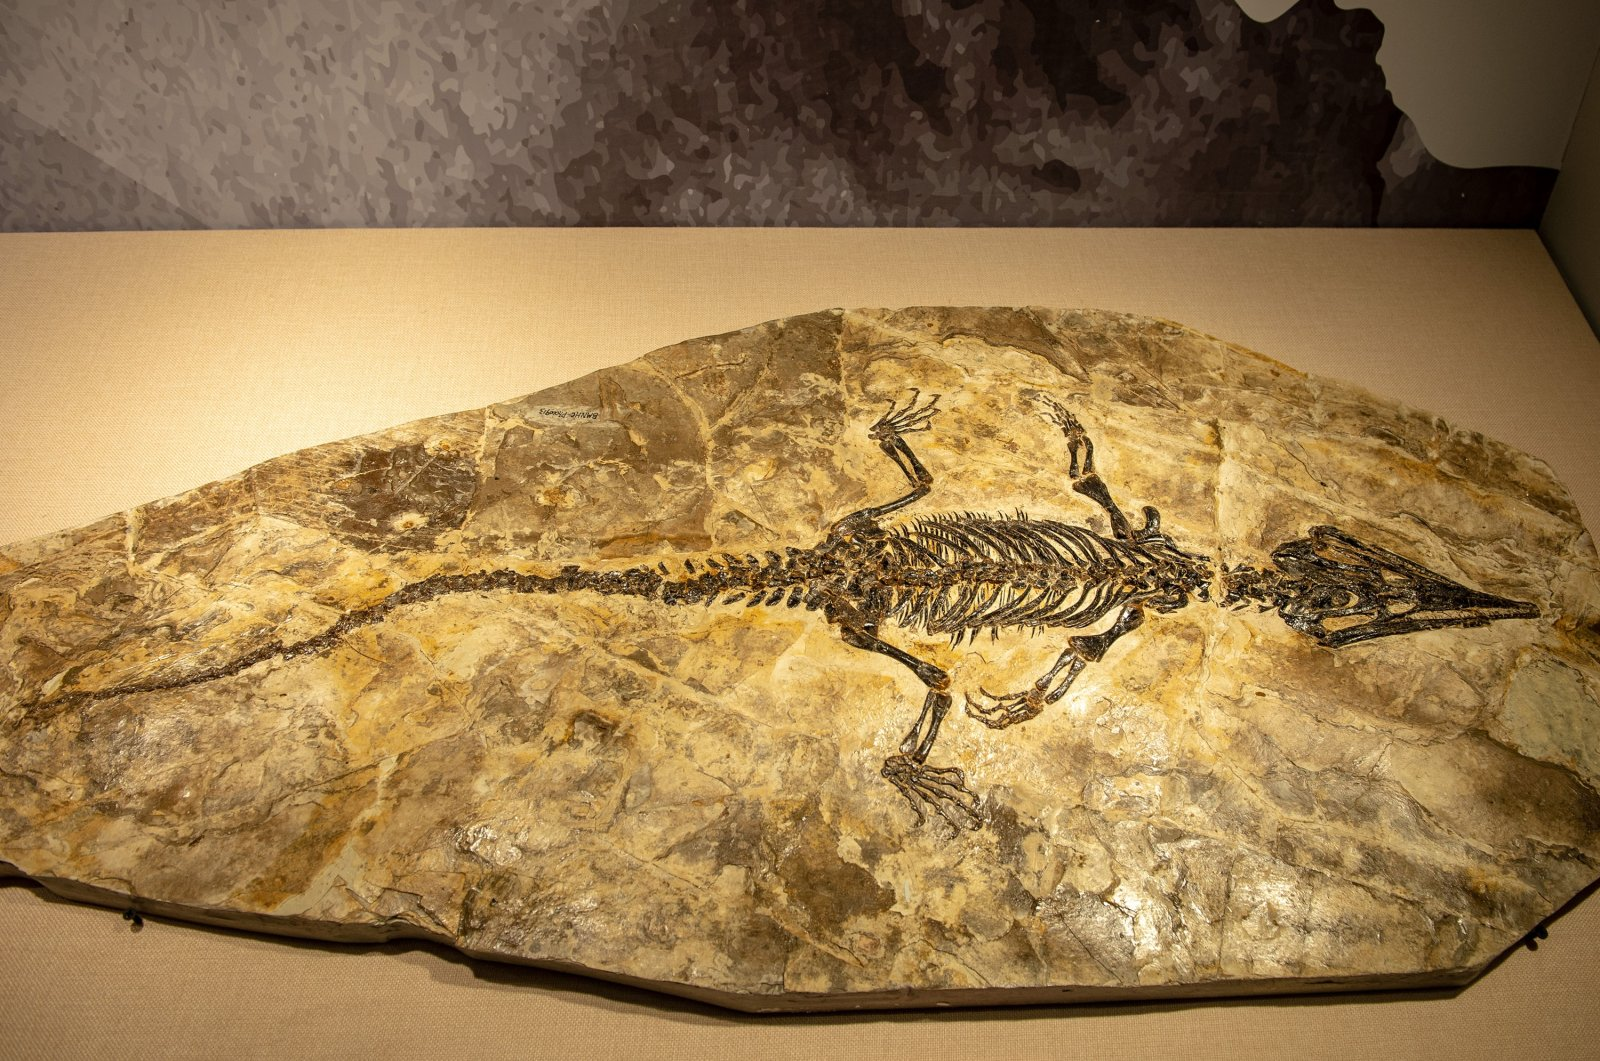 The fossils of Jehol Biota are displayed at the Beijing Natural History Museum in Beijing, Nov 28, 2020. (Getty Images)